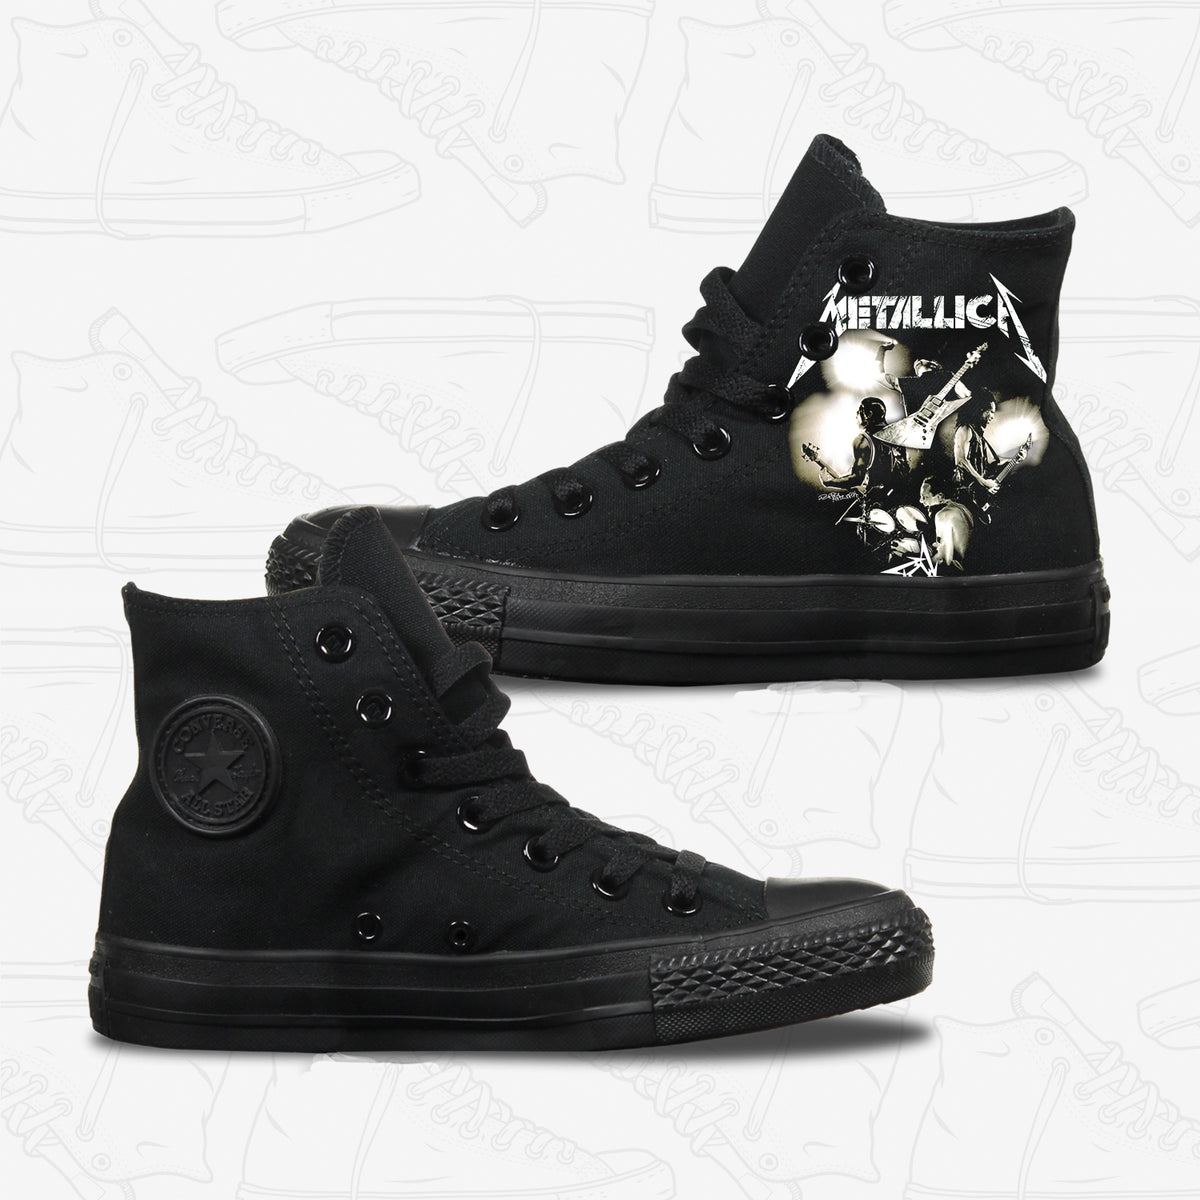 Metallica Adult Converse Shoes